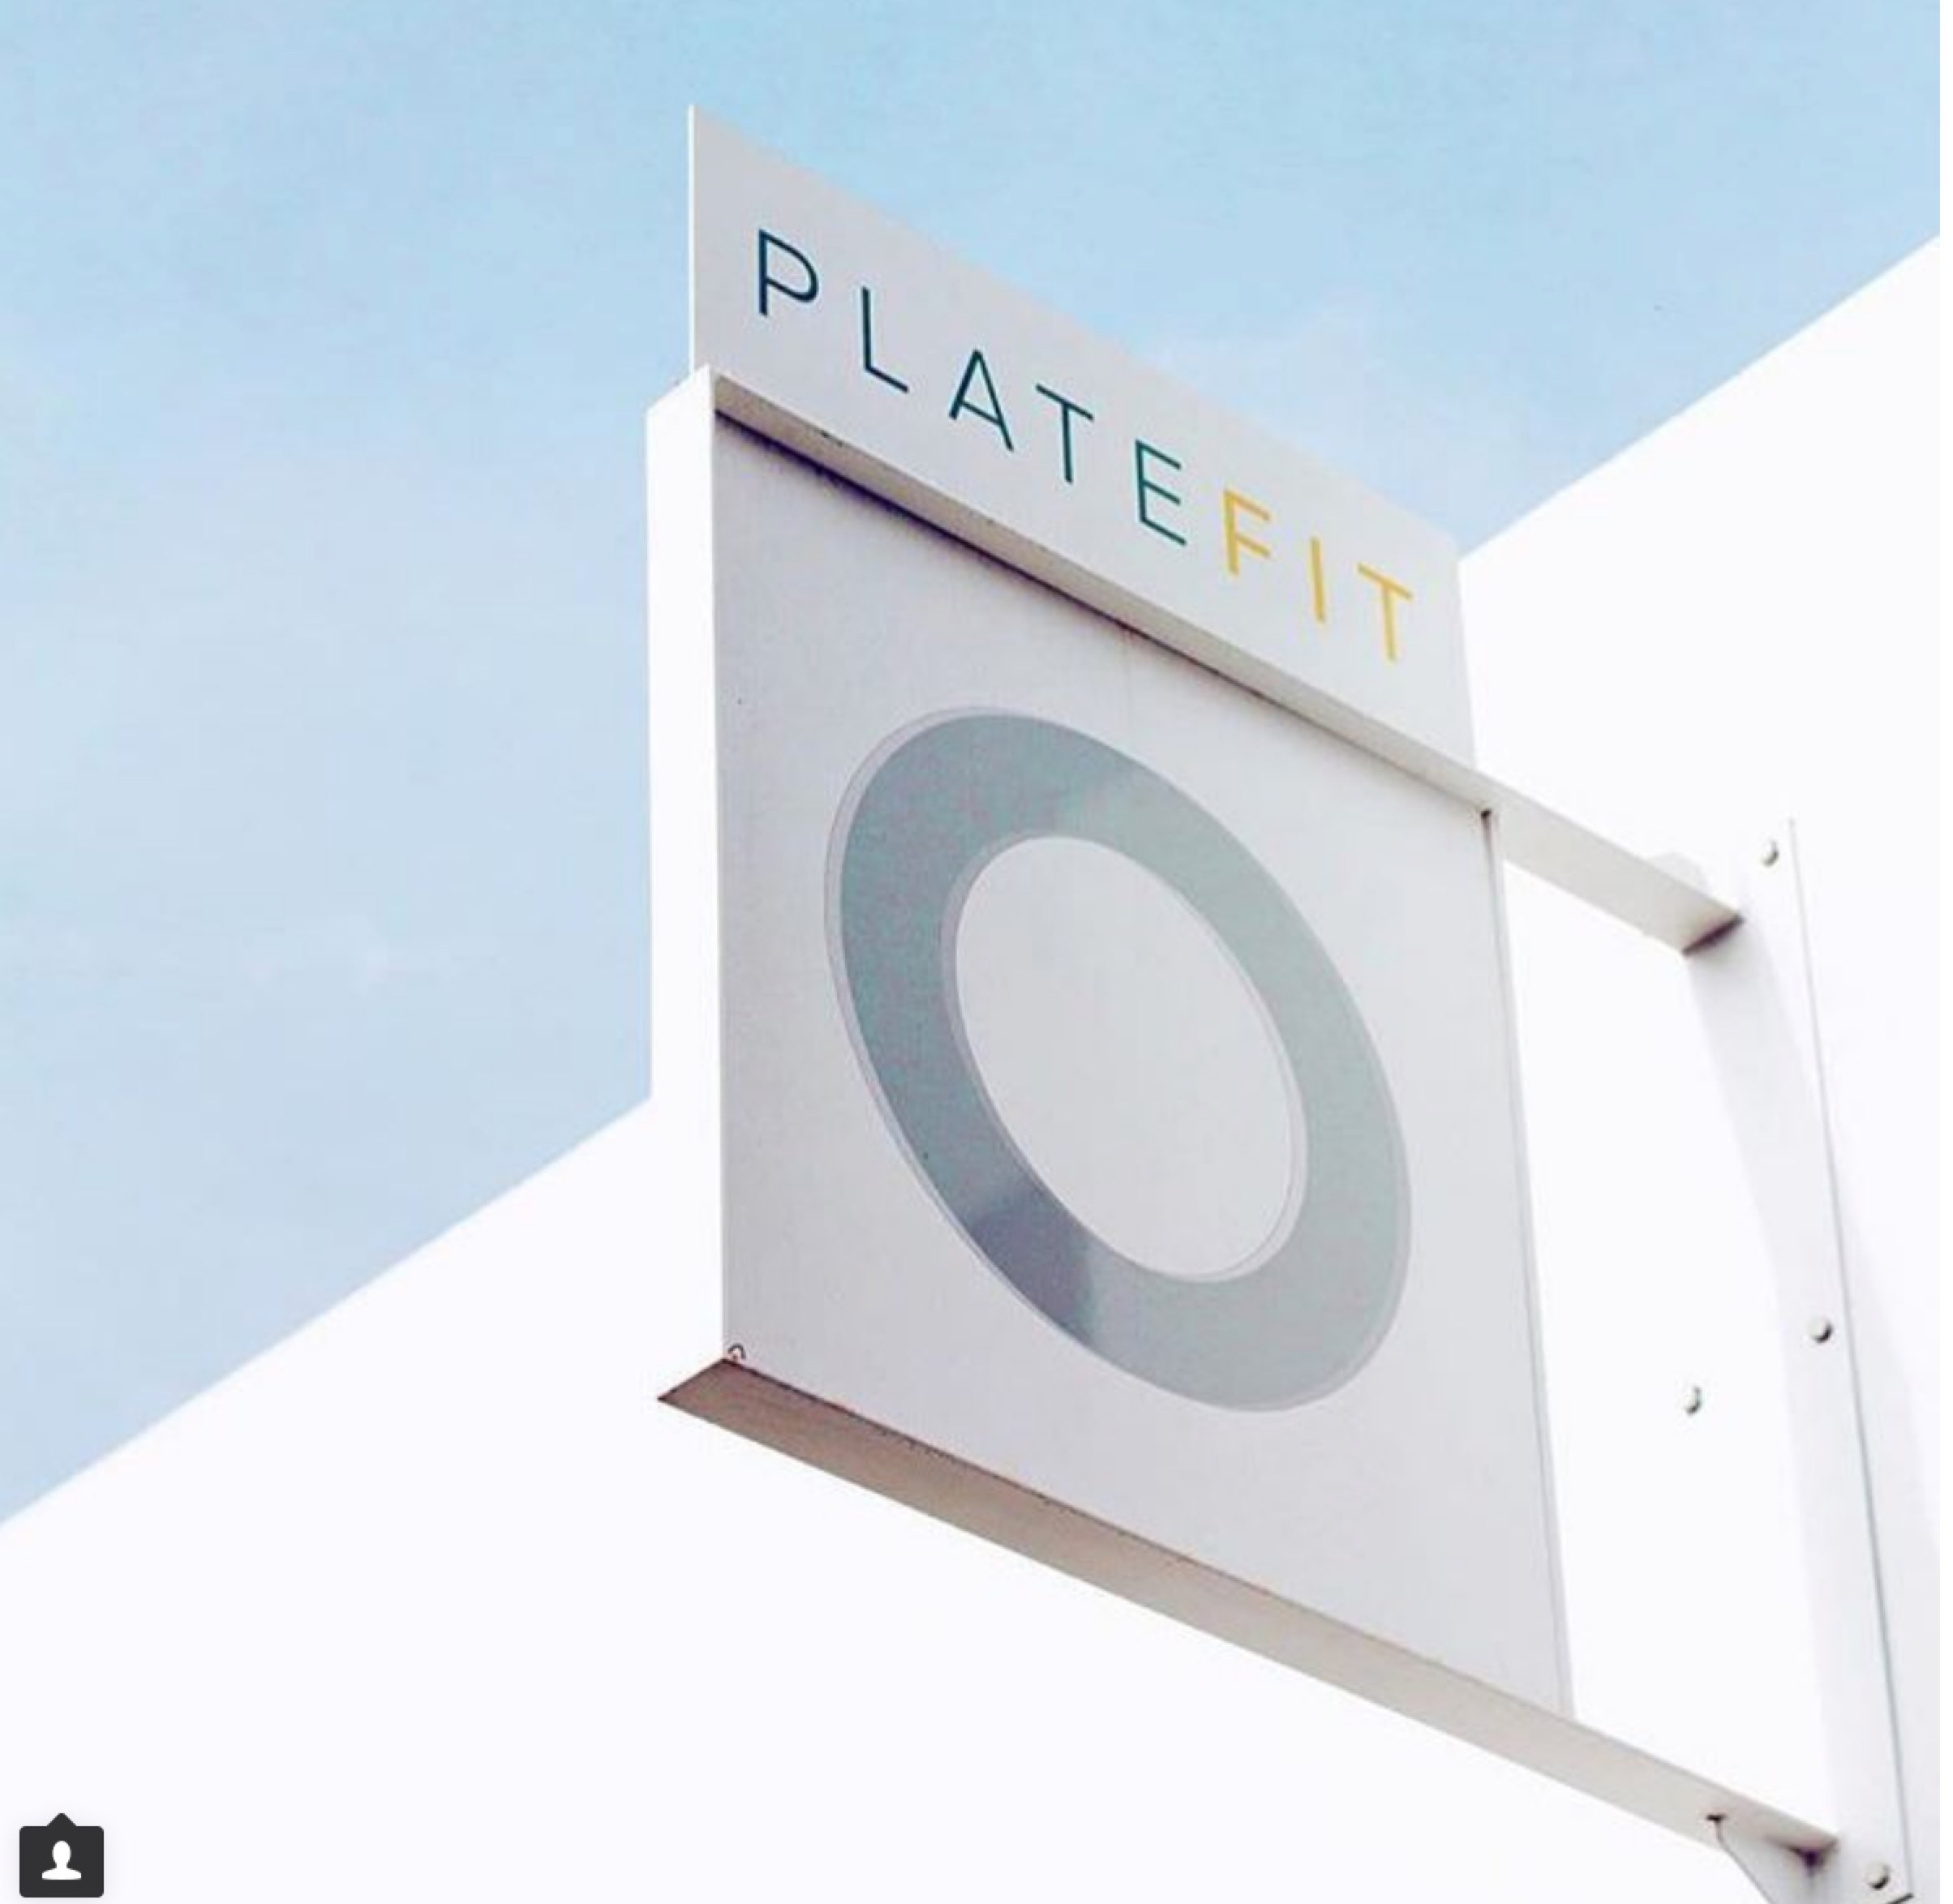 PLATEFIT® (@platefit) • Instagram photos and videos-8-3.jpg